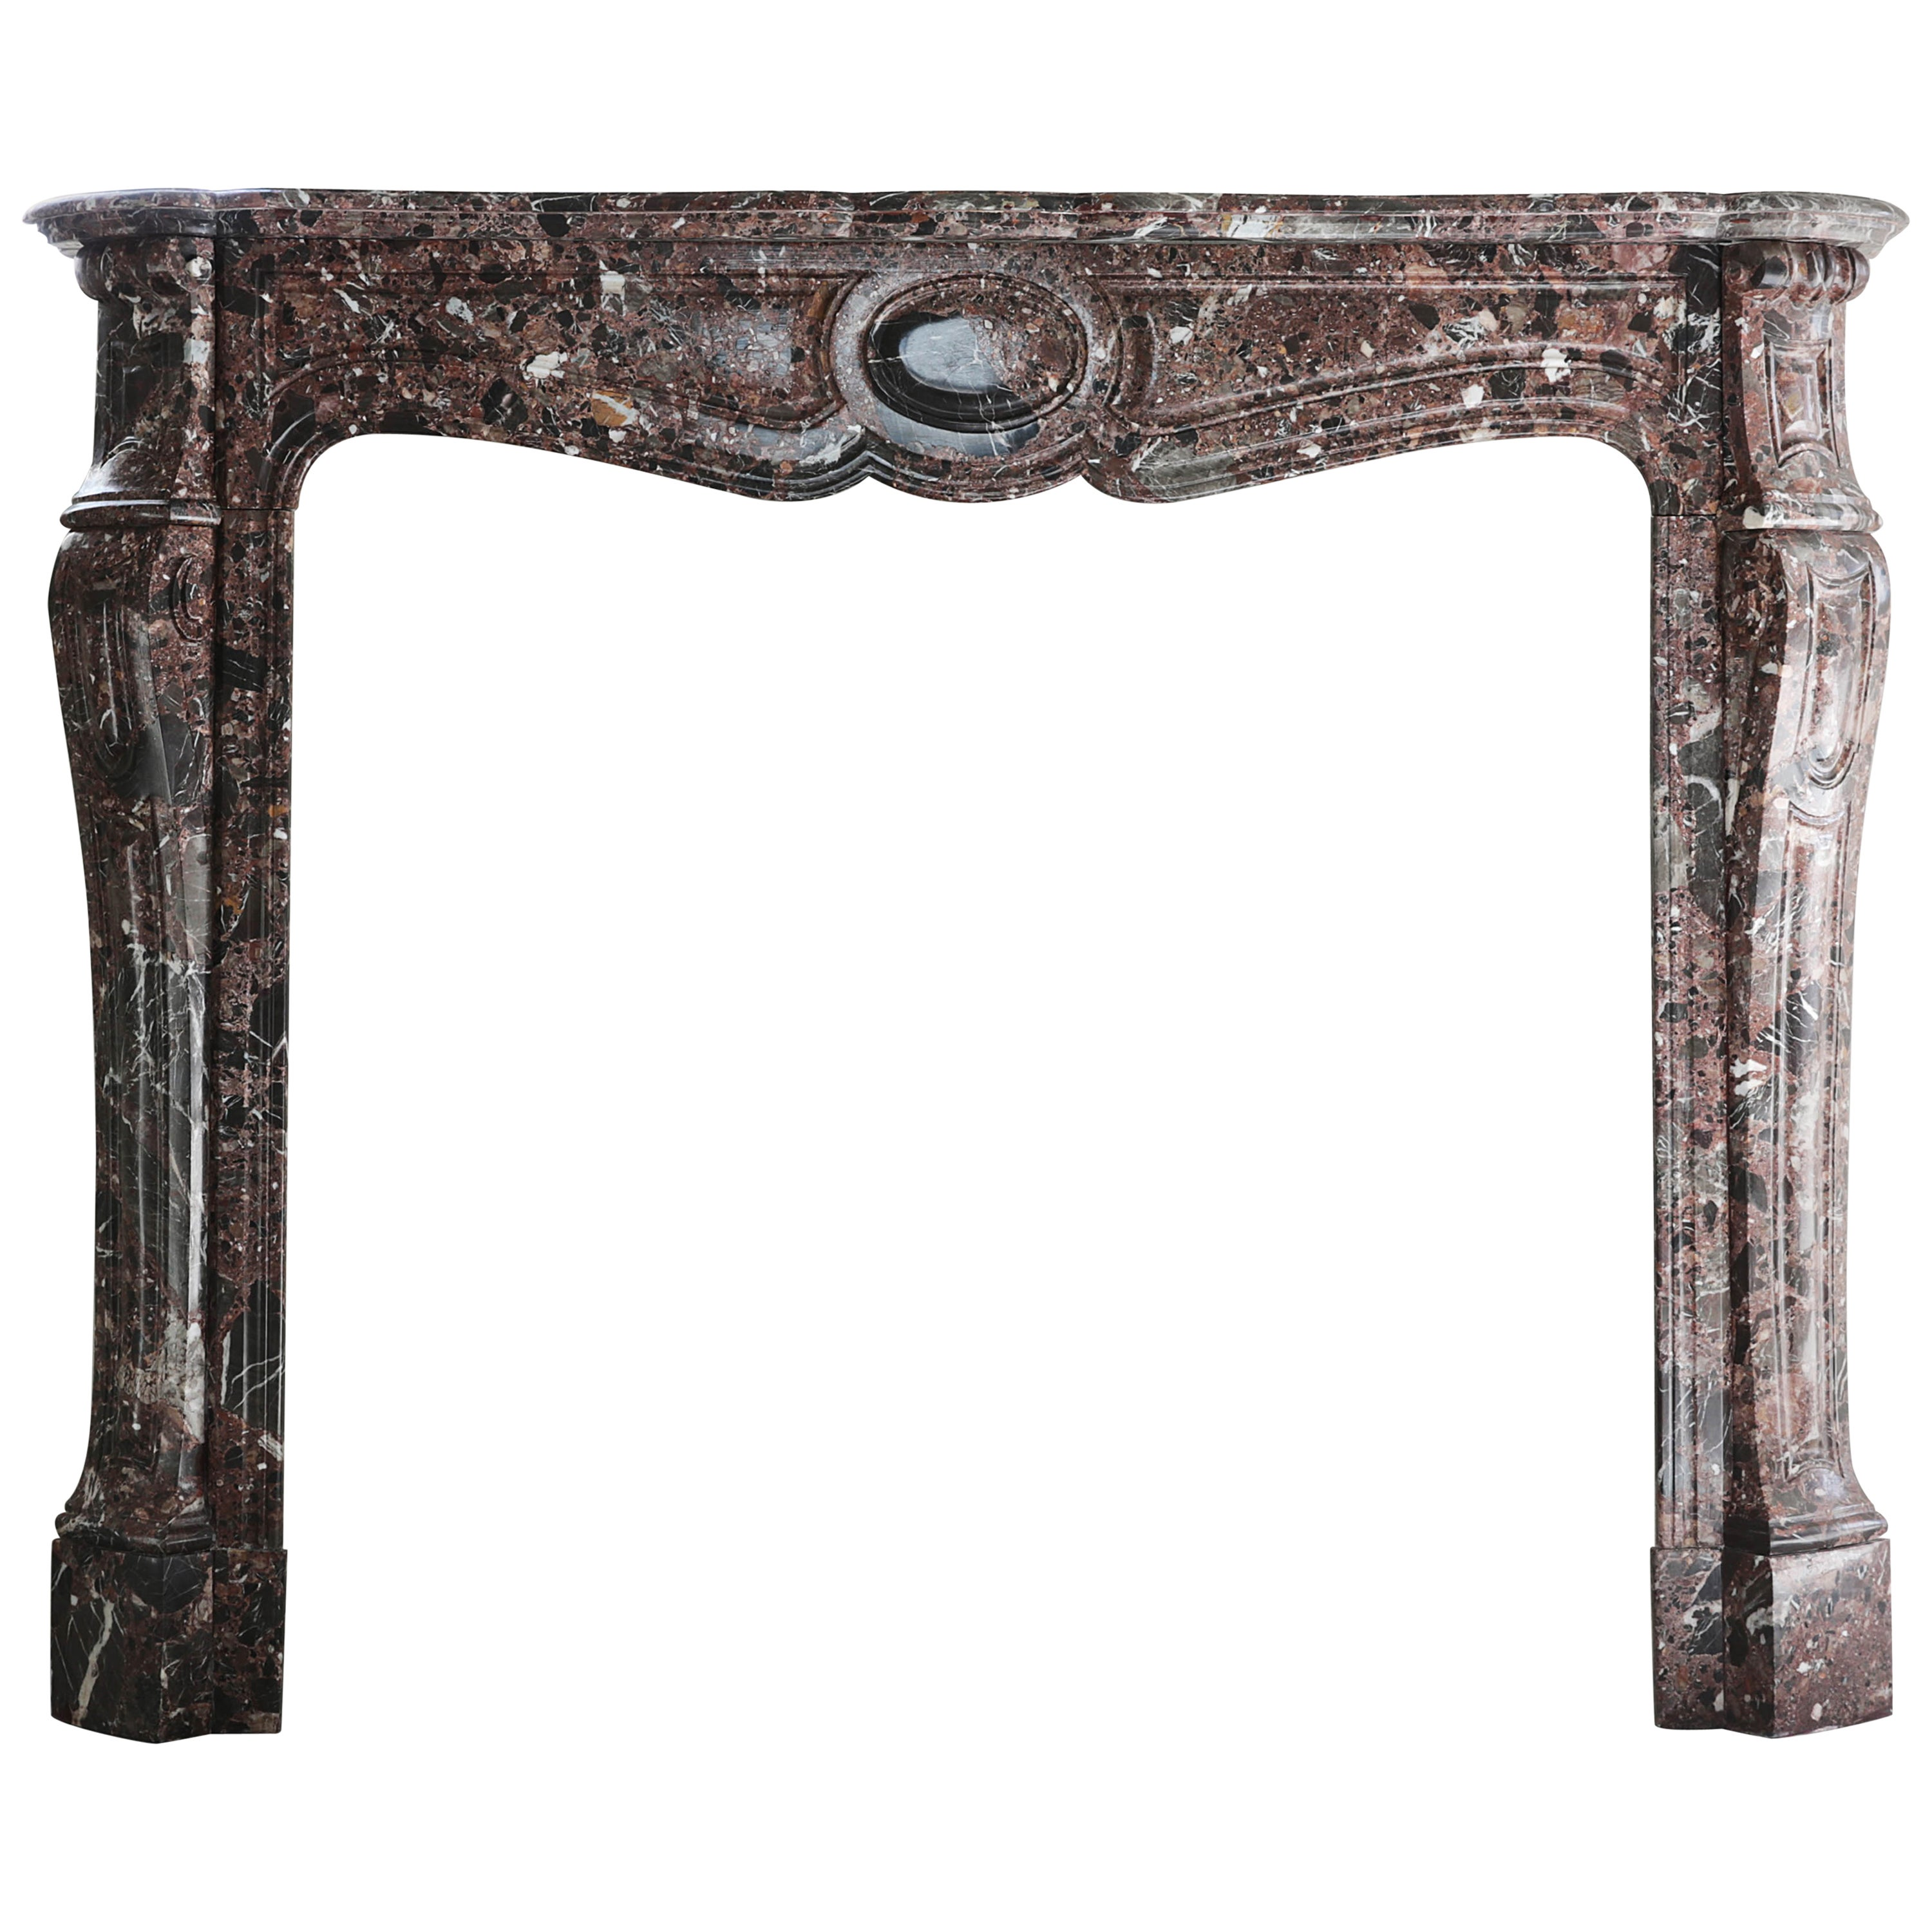 Antique Marble Fireplace, Pompadour style, 19th century